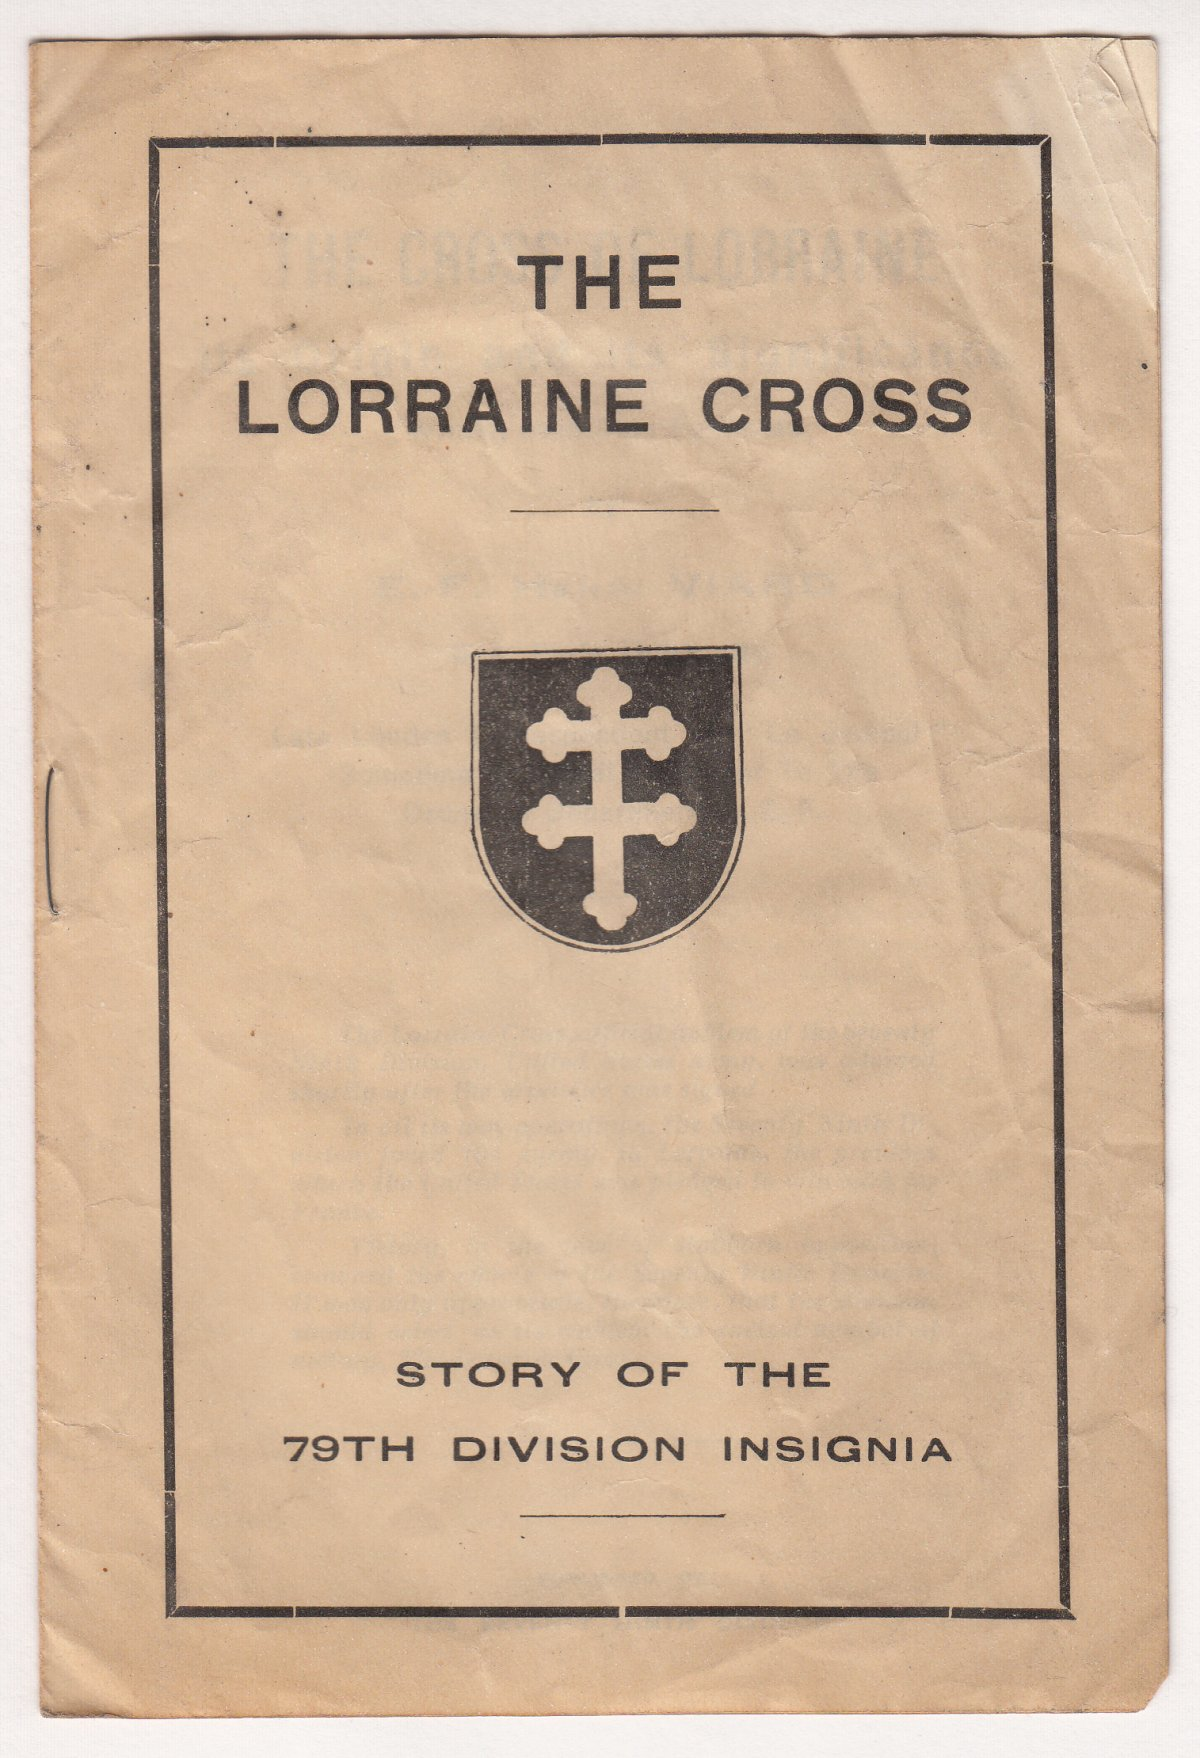 The Lorraine Cross Story of the 79th Division Insignia - Page 1